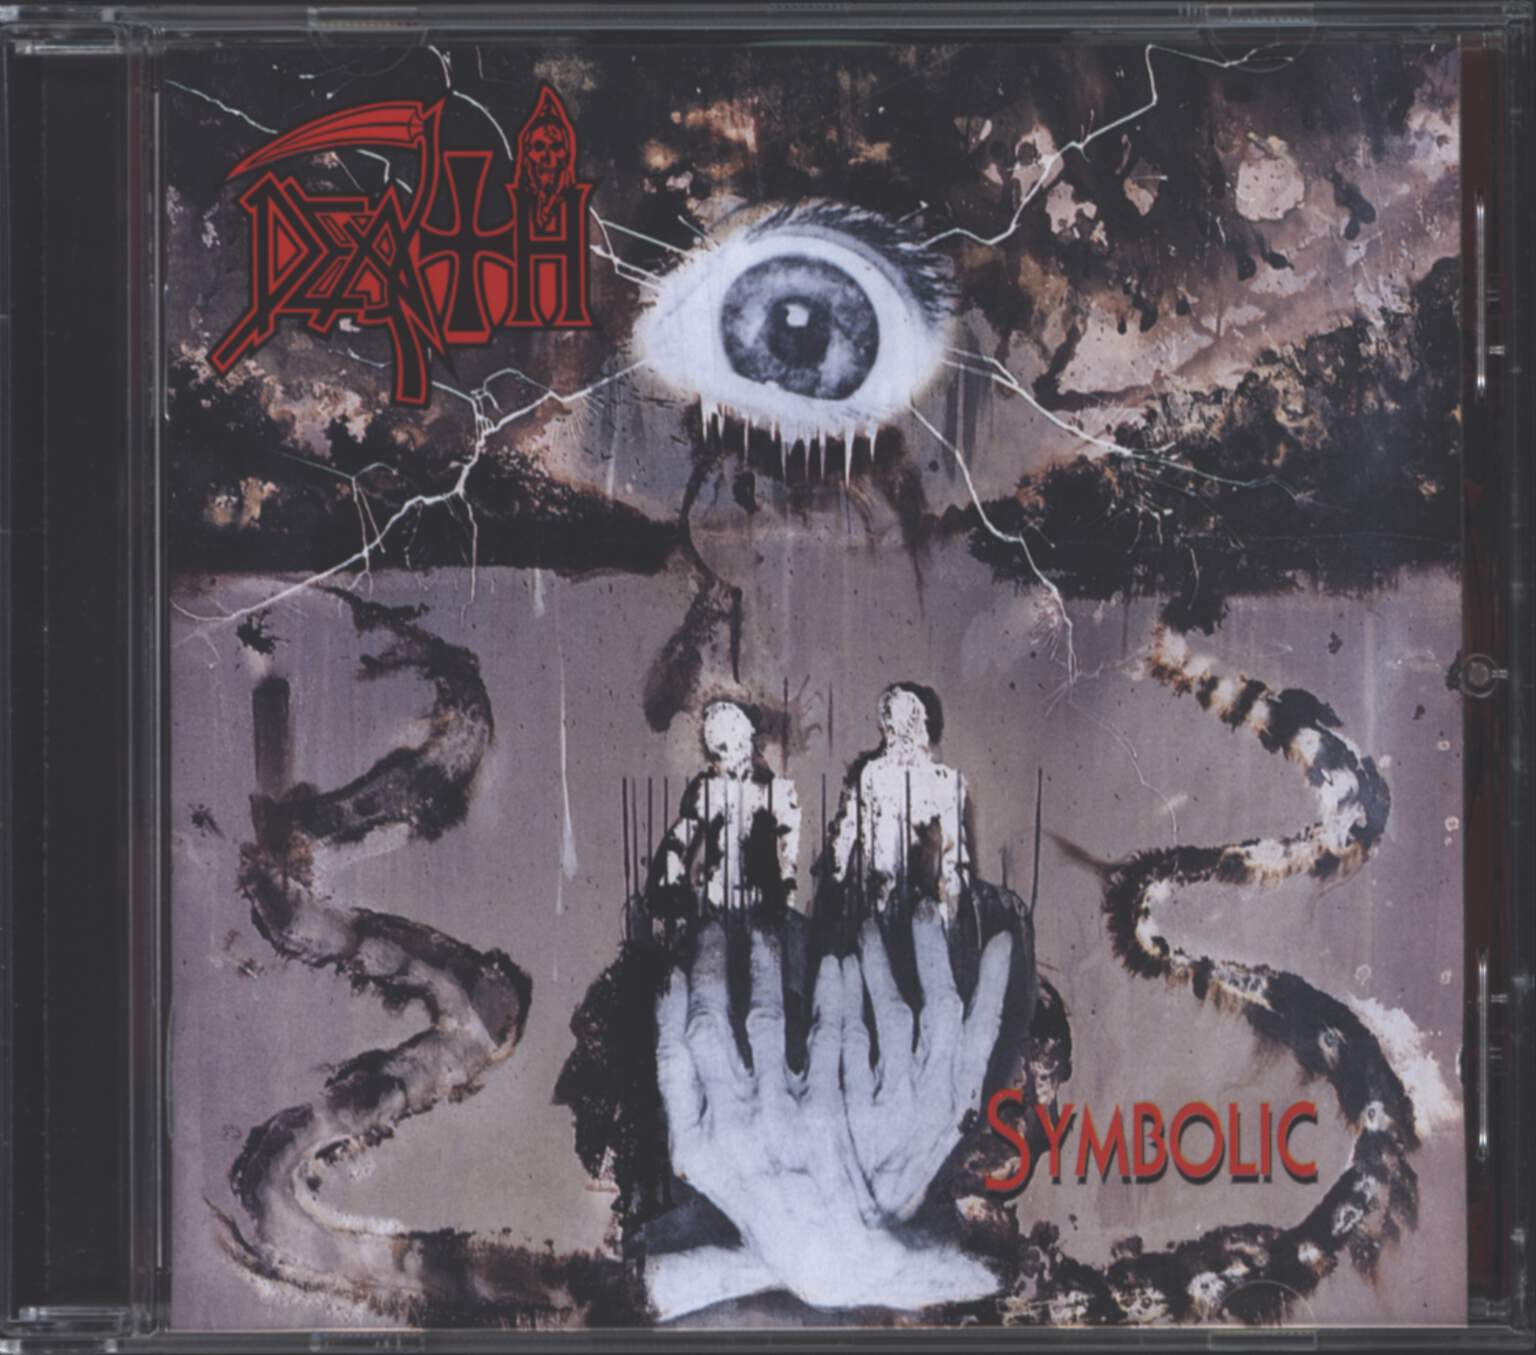 Death: Symbolic, CD